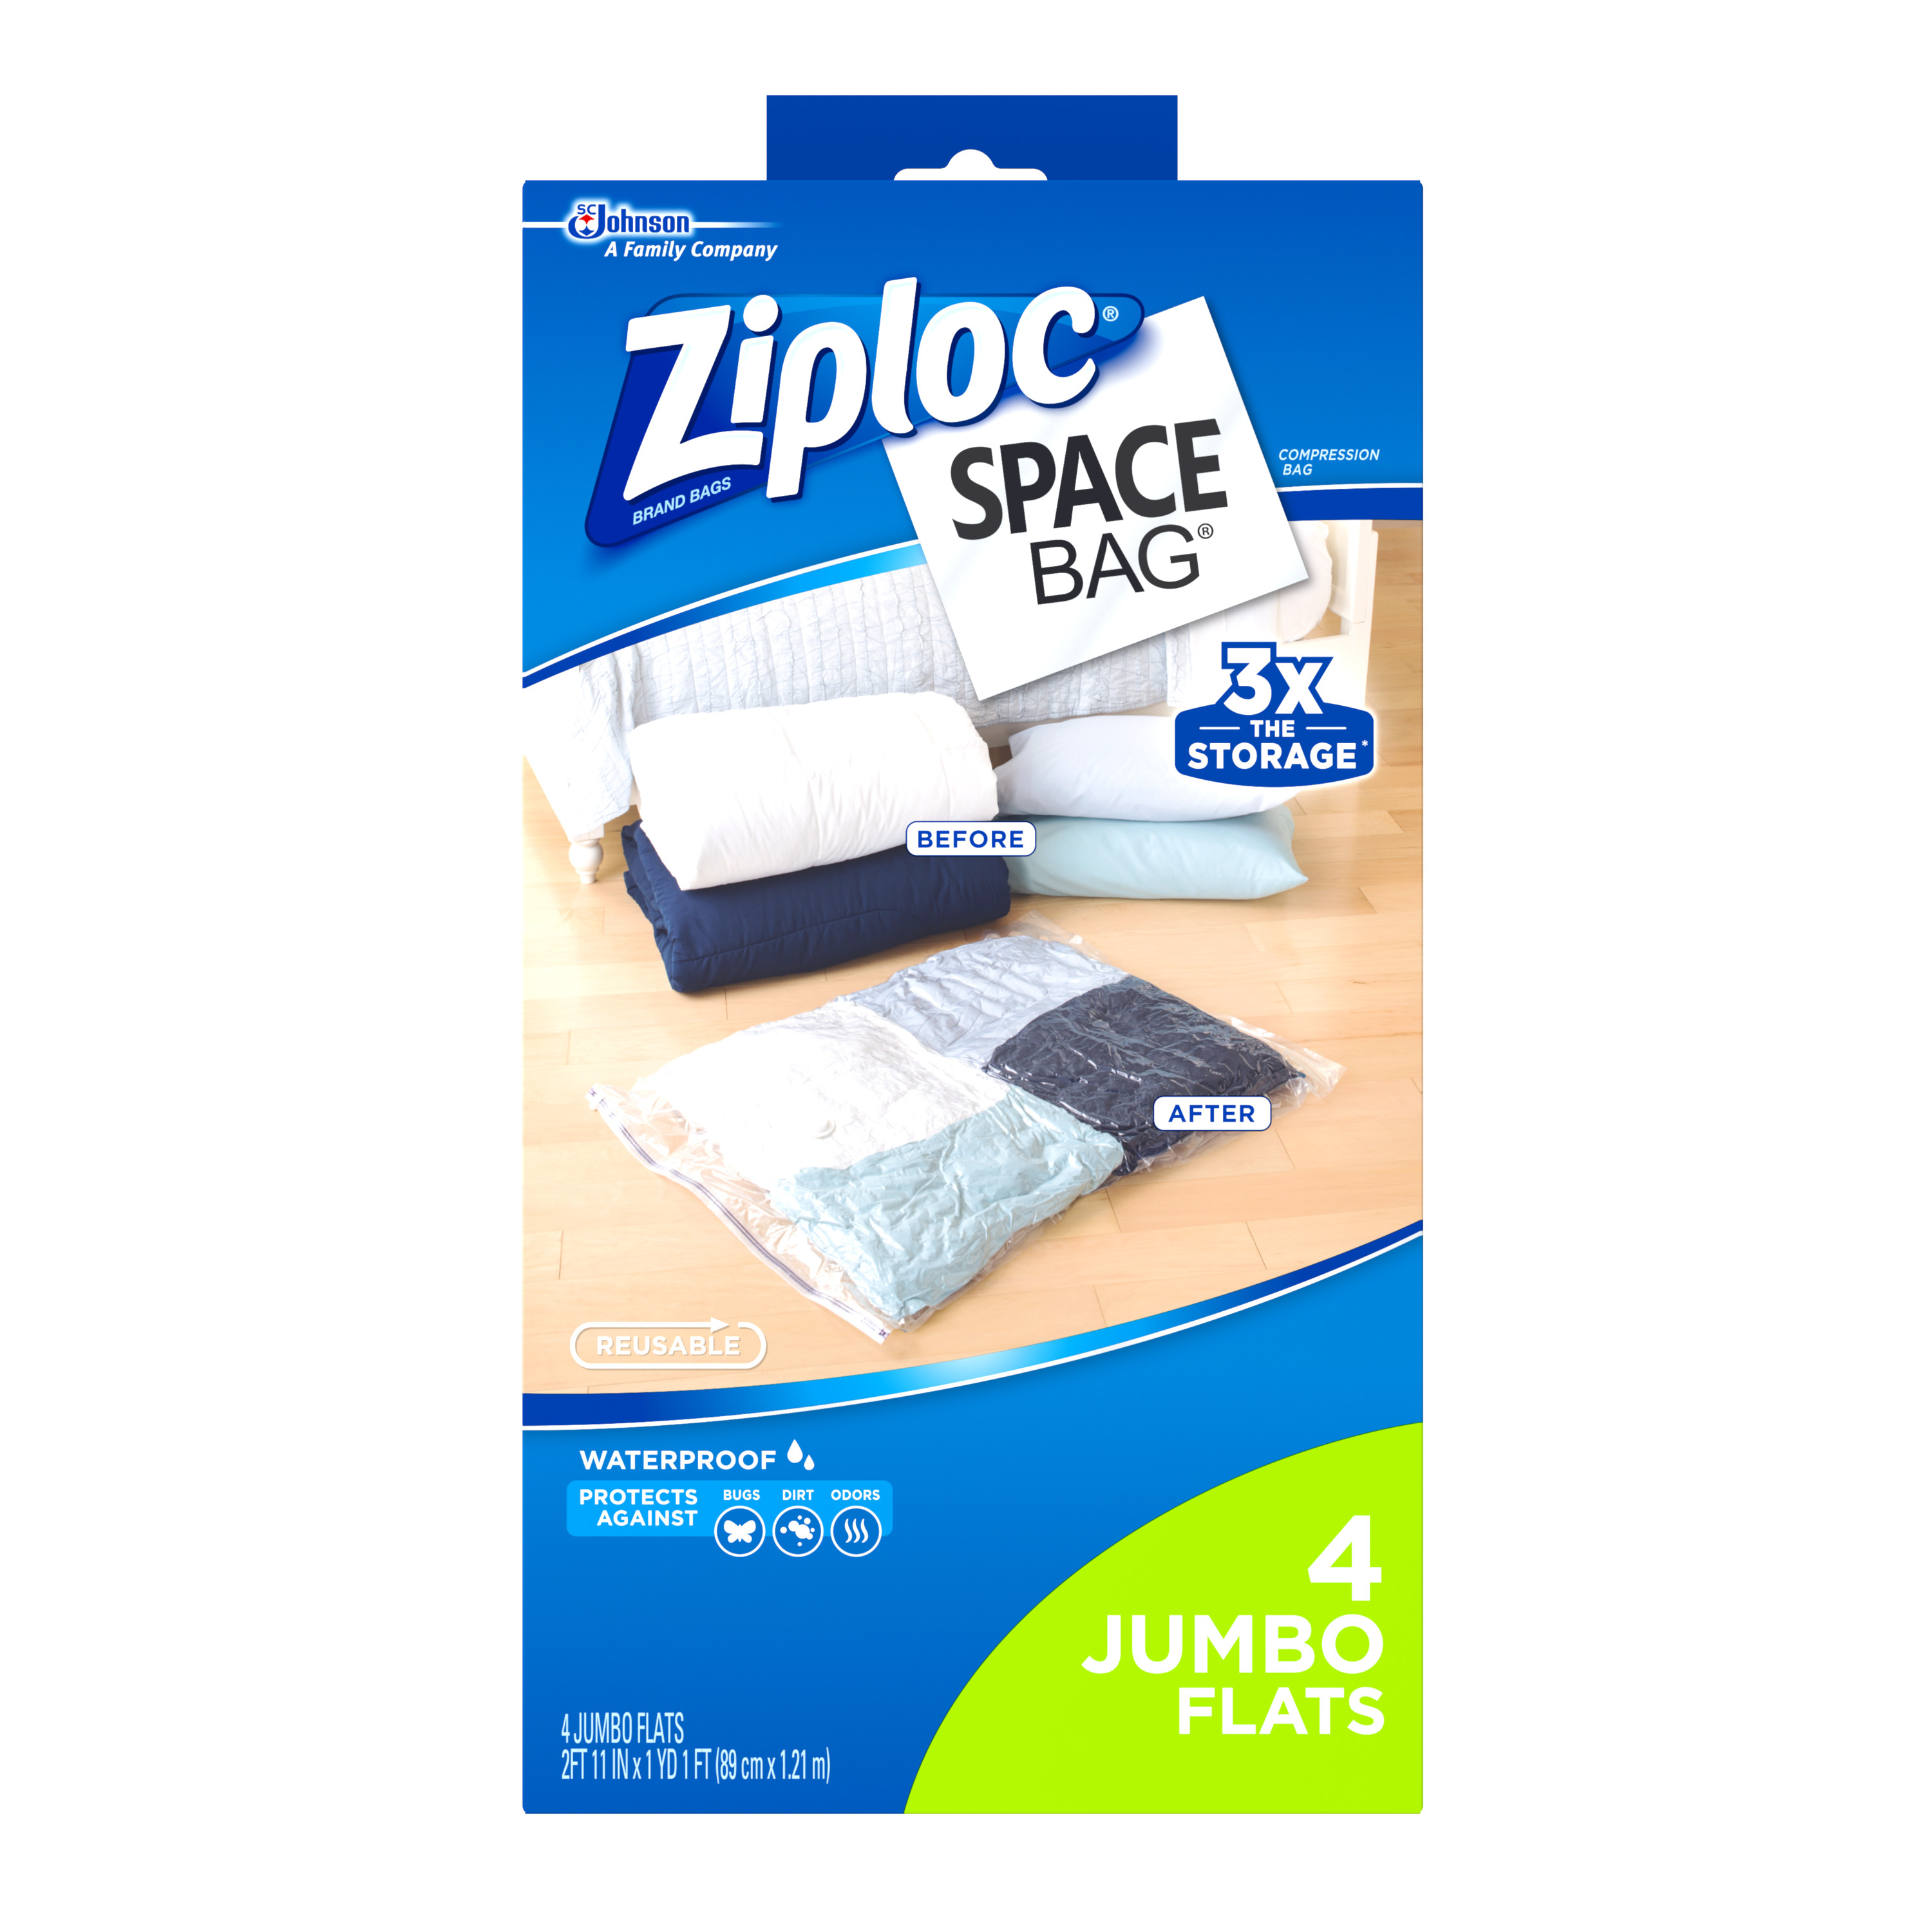 Ziploc Space Bag Vacuum Bag Jumbo 4 count - Walmart.com